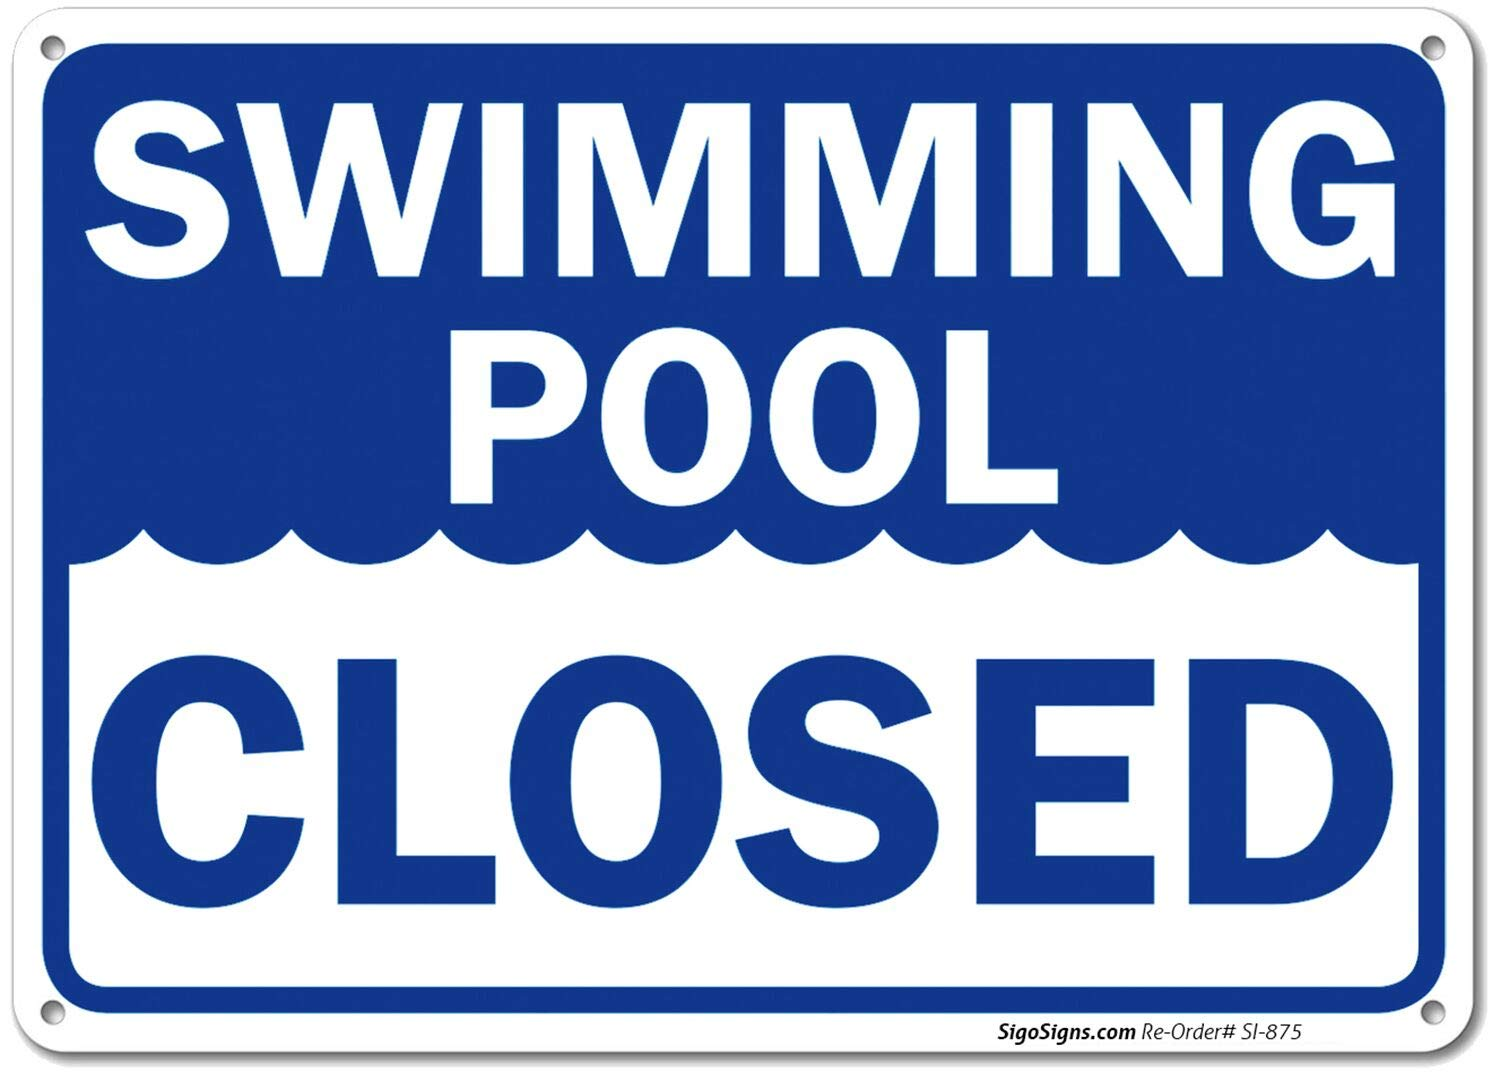 2ef324b41e6 Amazon.com: Swimming Pool Closed Sign, 10x14 Rust Free,40 Aluminum UV  Printed, Easy to Mount Weather Resistant Long Lasting Ink Made in USA by  SIGO SIGNS: ...